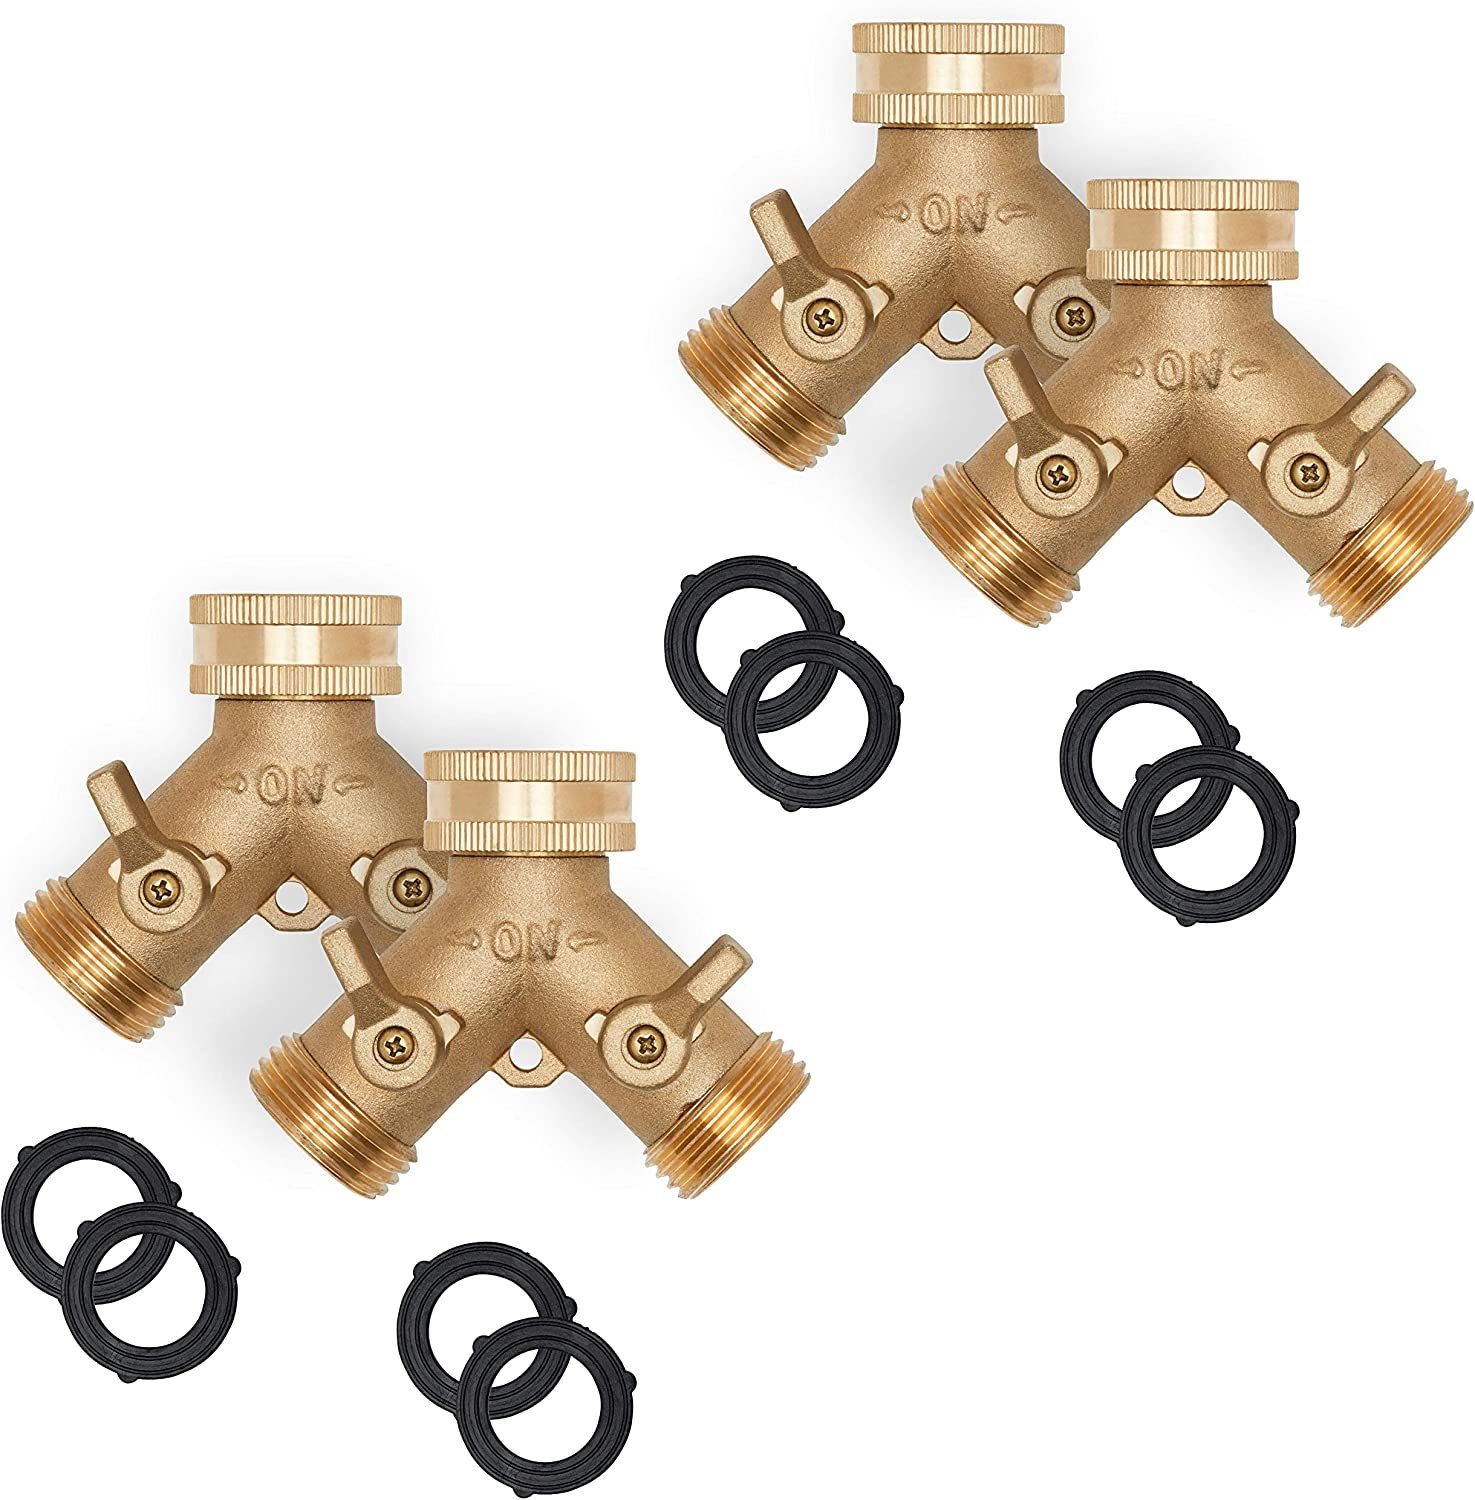 Morvat Heavy Duty Brass Garden Hose Connector Tap Splitter (2 Way) – New and Improved - Outlet Splitter, Hose Splitter, Hose Spigot Adapter with 2 Valves, Plus 2 Extra Rubber Washers, 4 Pack